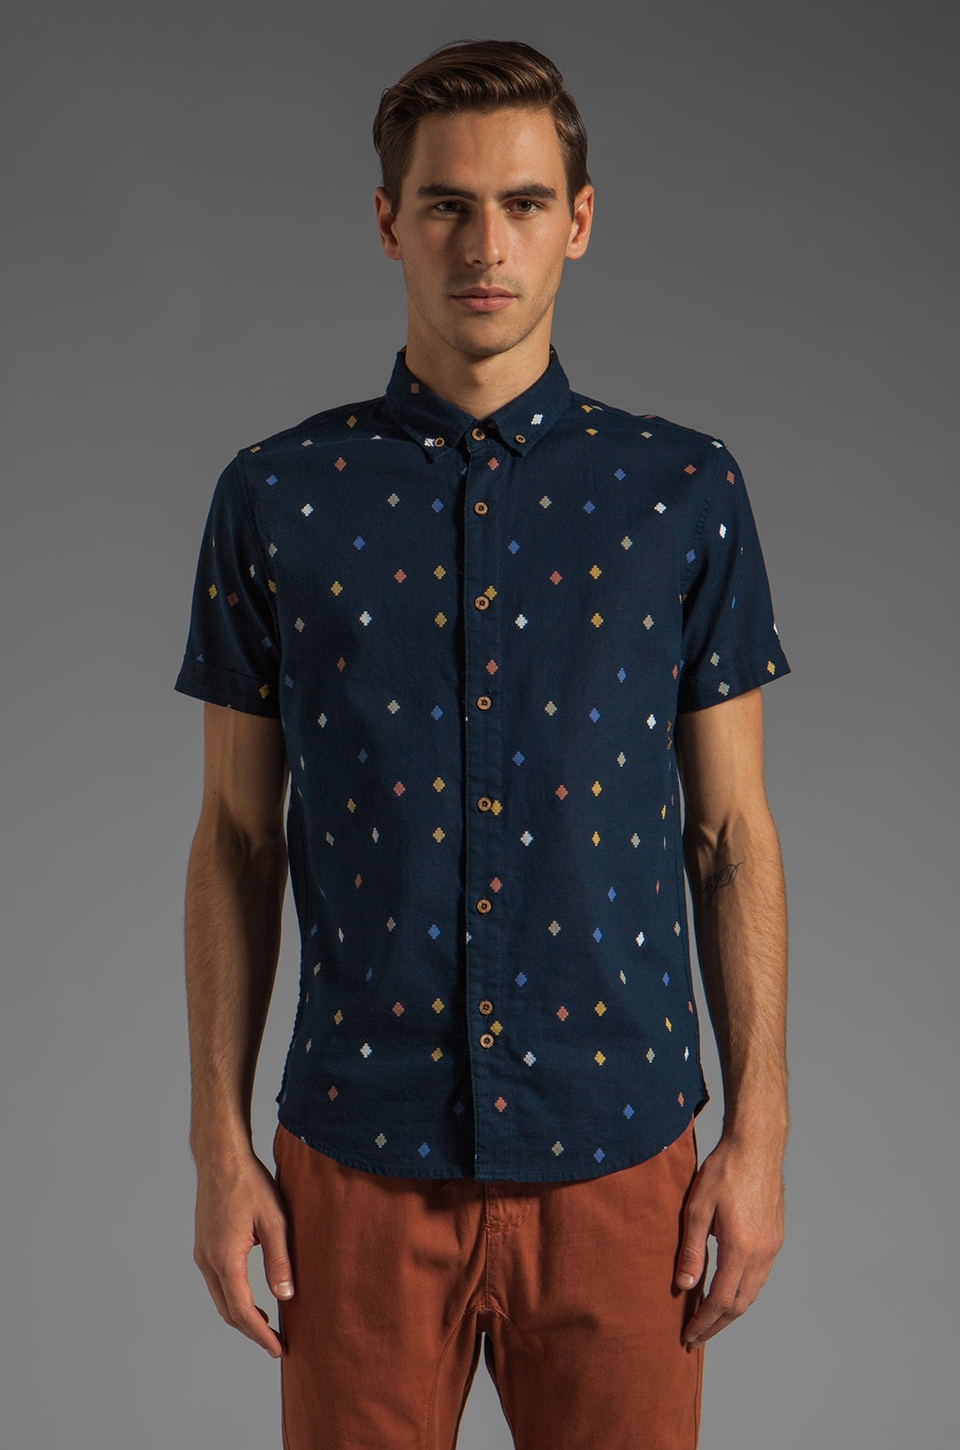 Zanerobe Malibu Short Sleeve Shirt in Navy